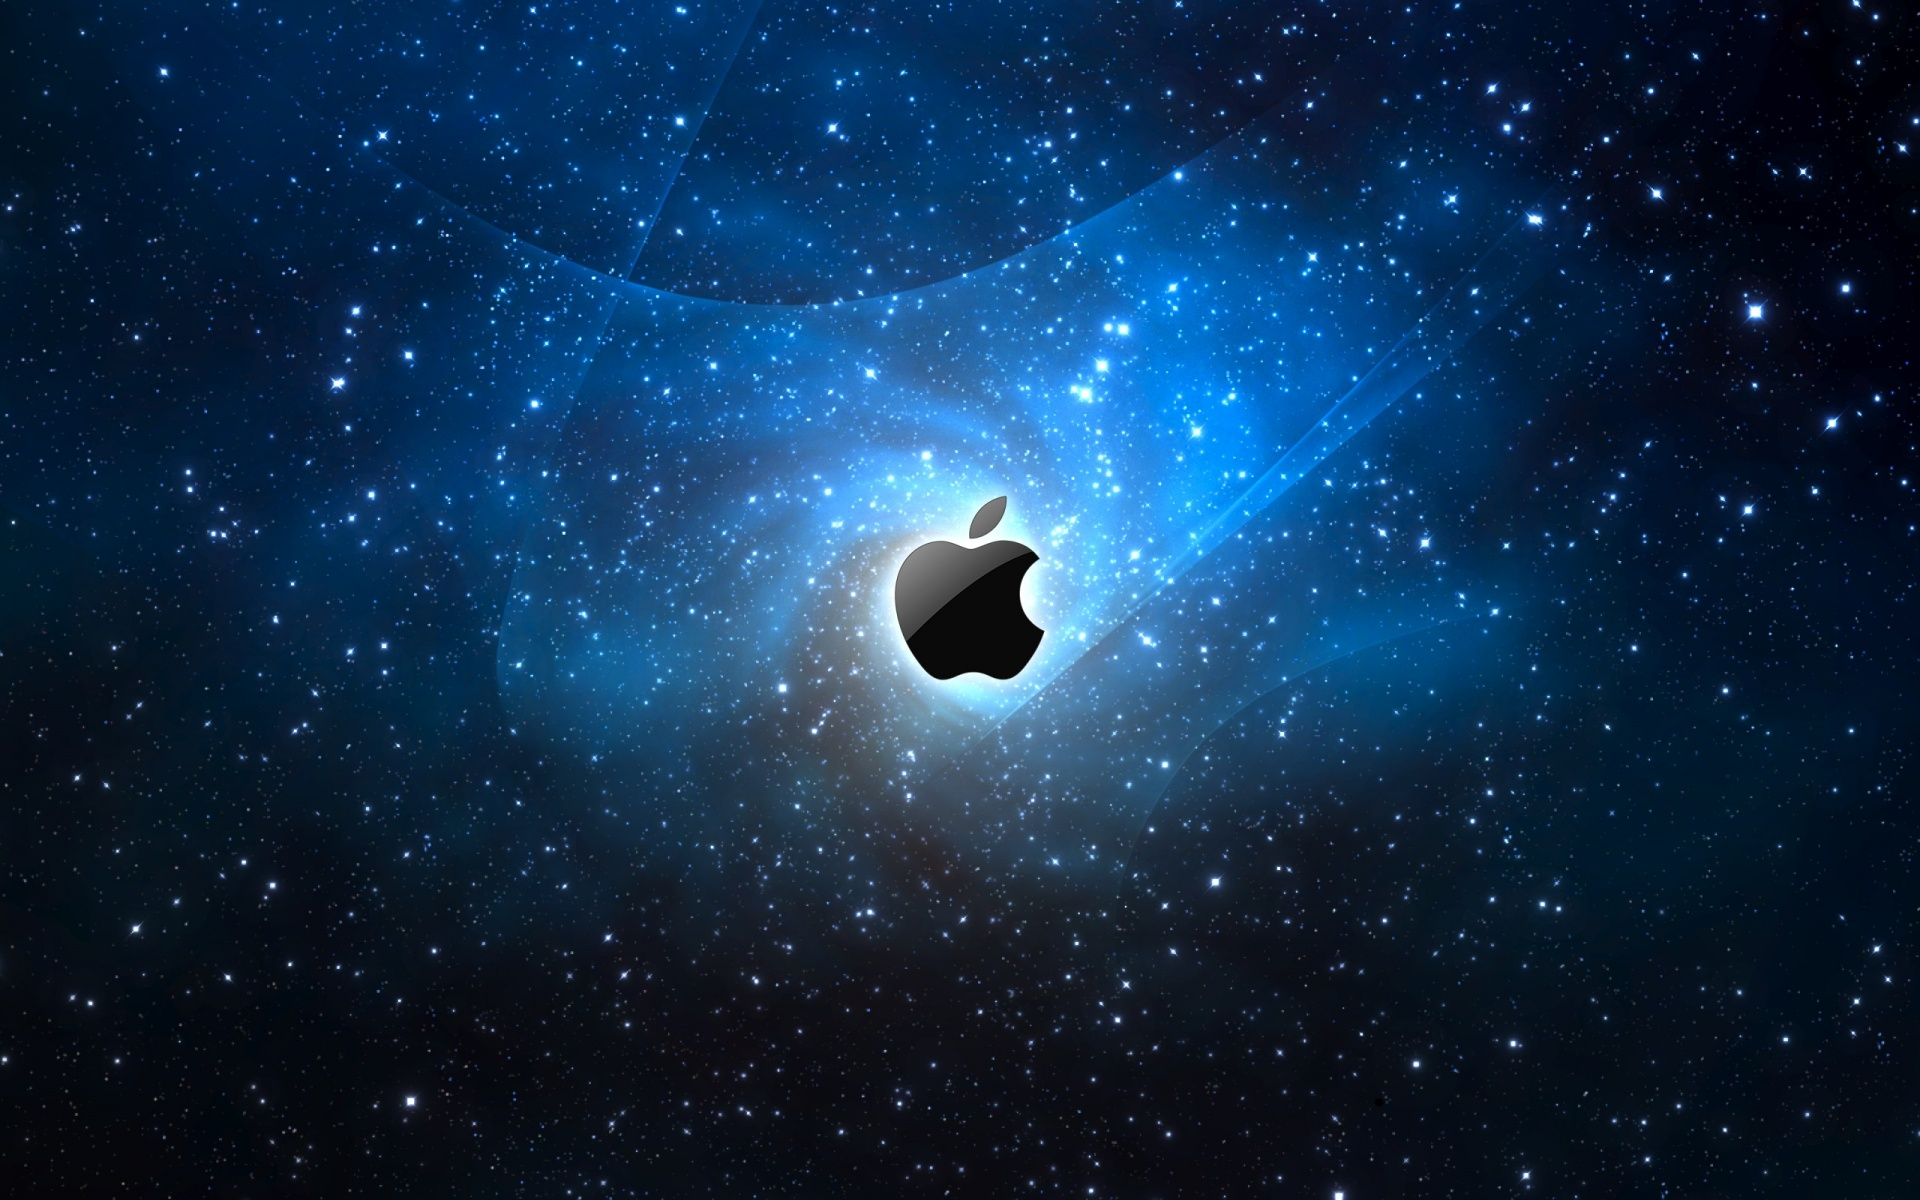 Apple Logo 6 Cool HD Wallpaper